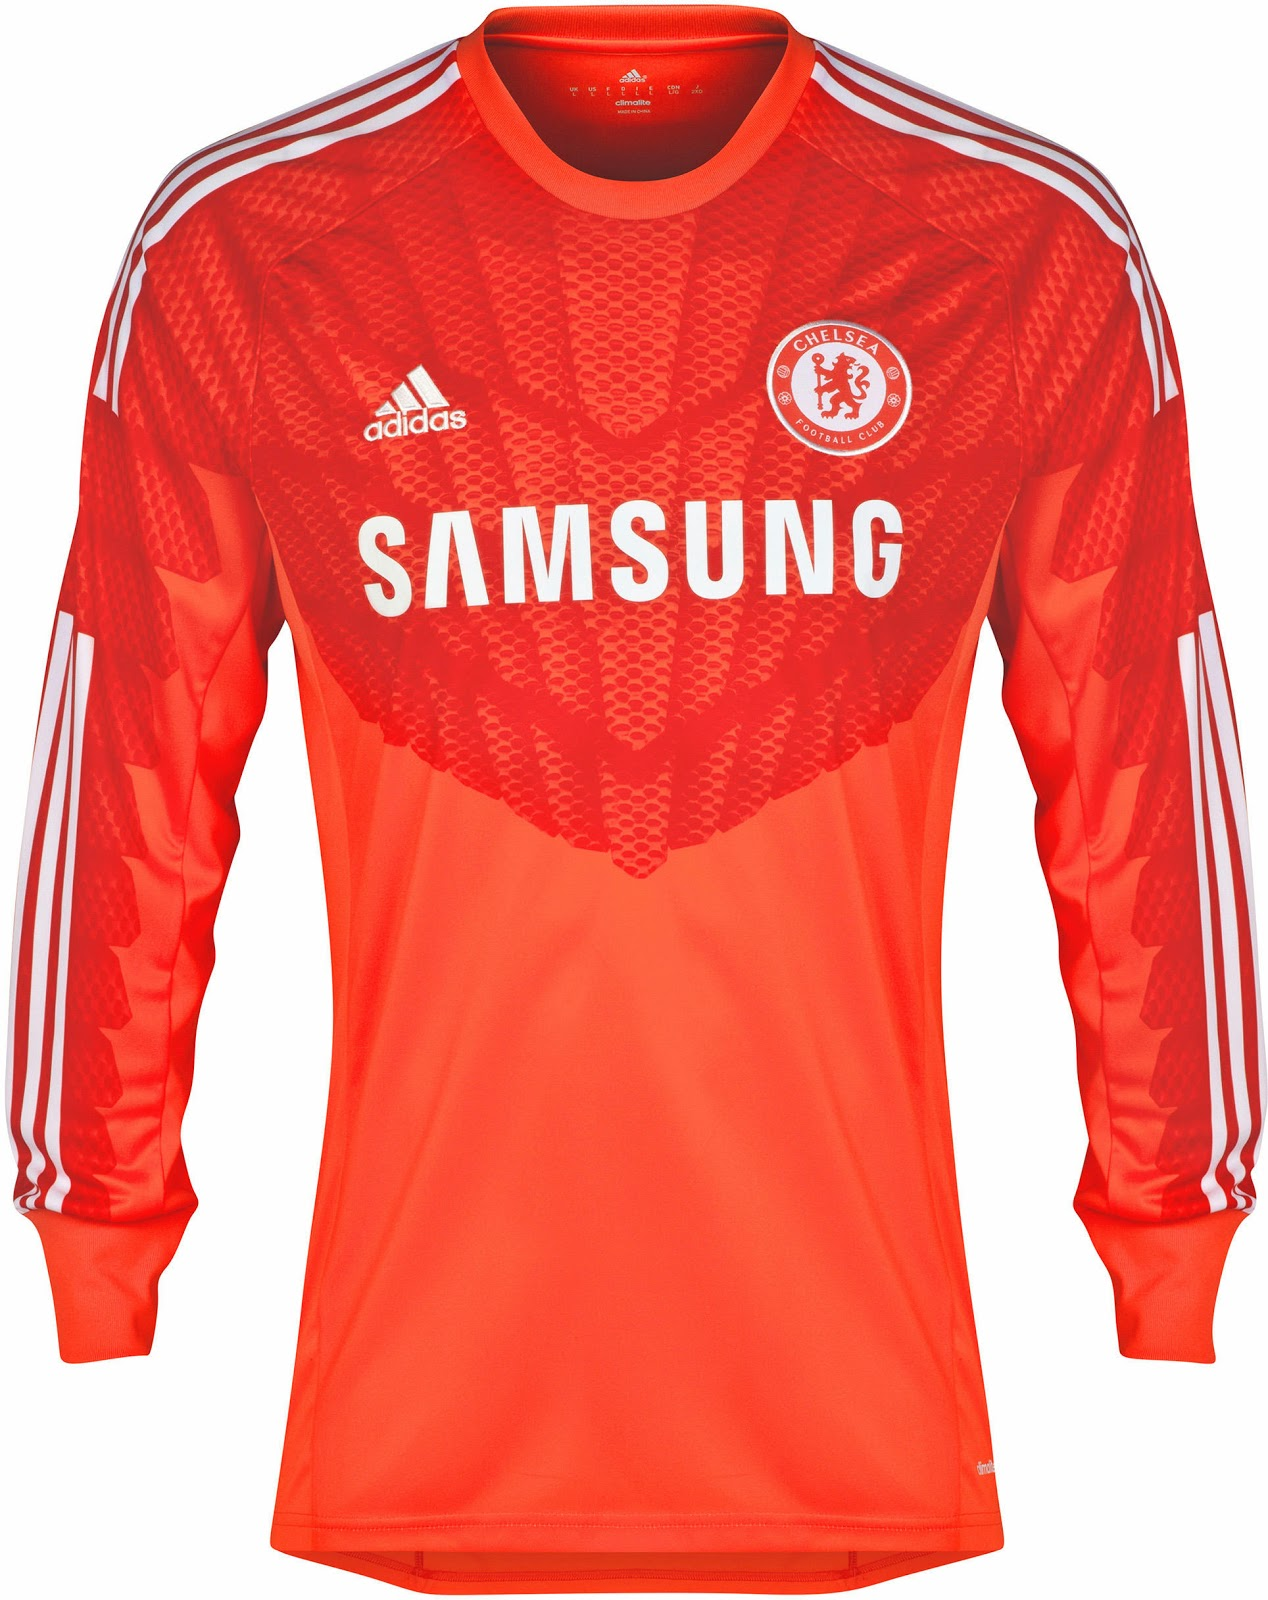 41957bf50 While the new Chelsea 14-15 Goalkeeper Kit features the unusual color red    orange